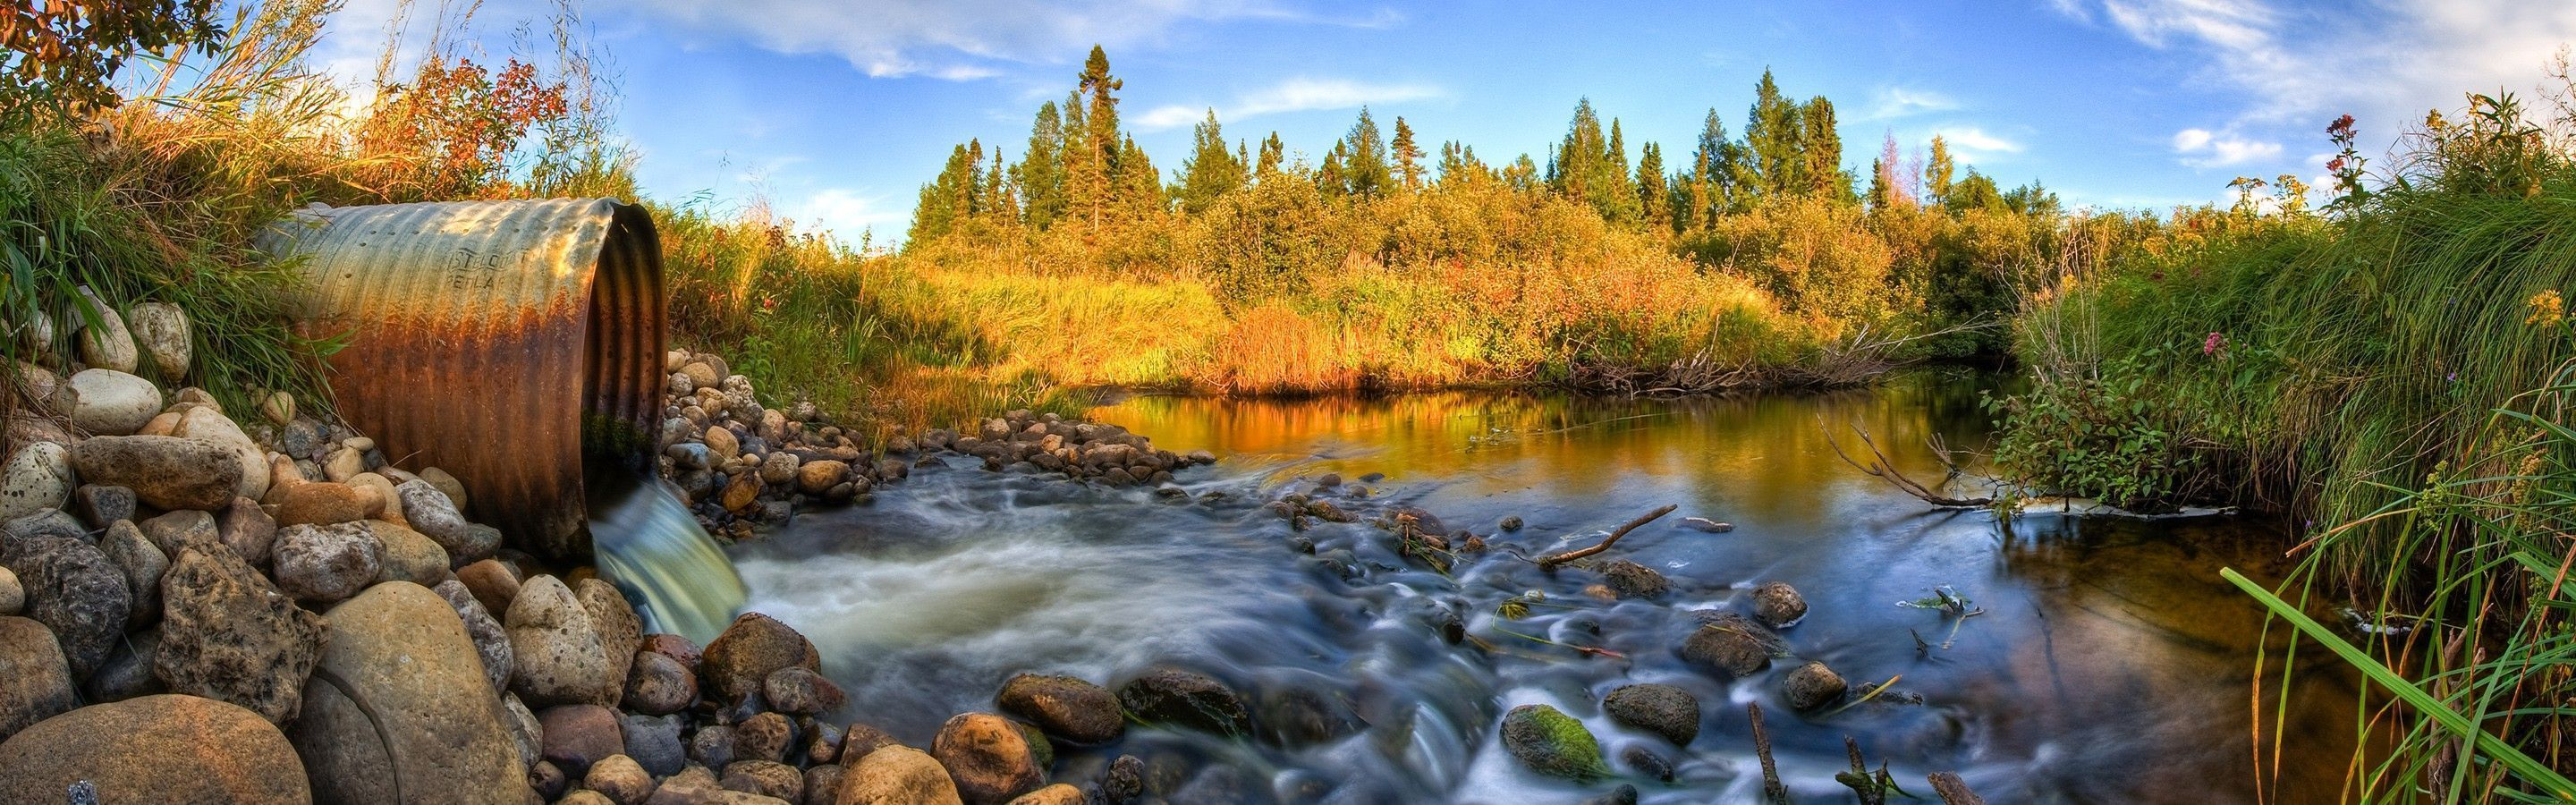 Paysages divers page 2 for Paysage wallpaper